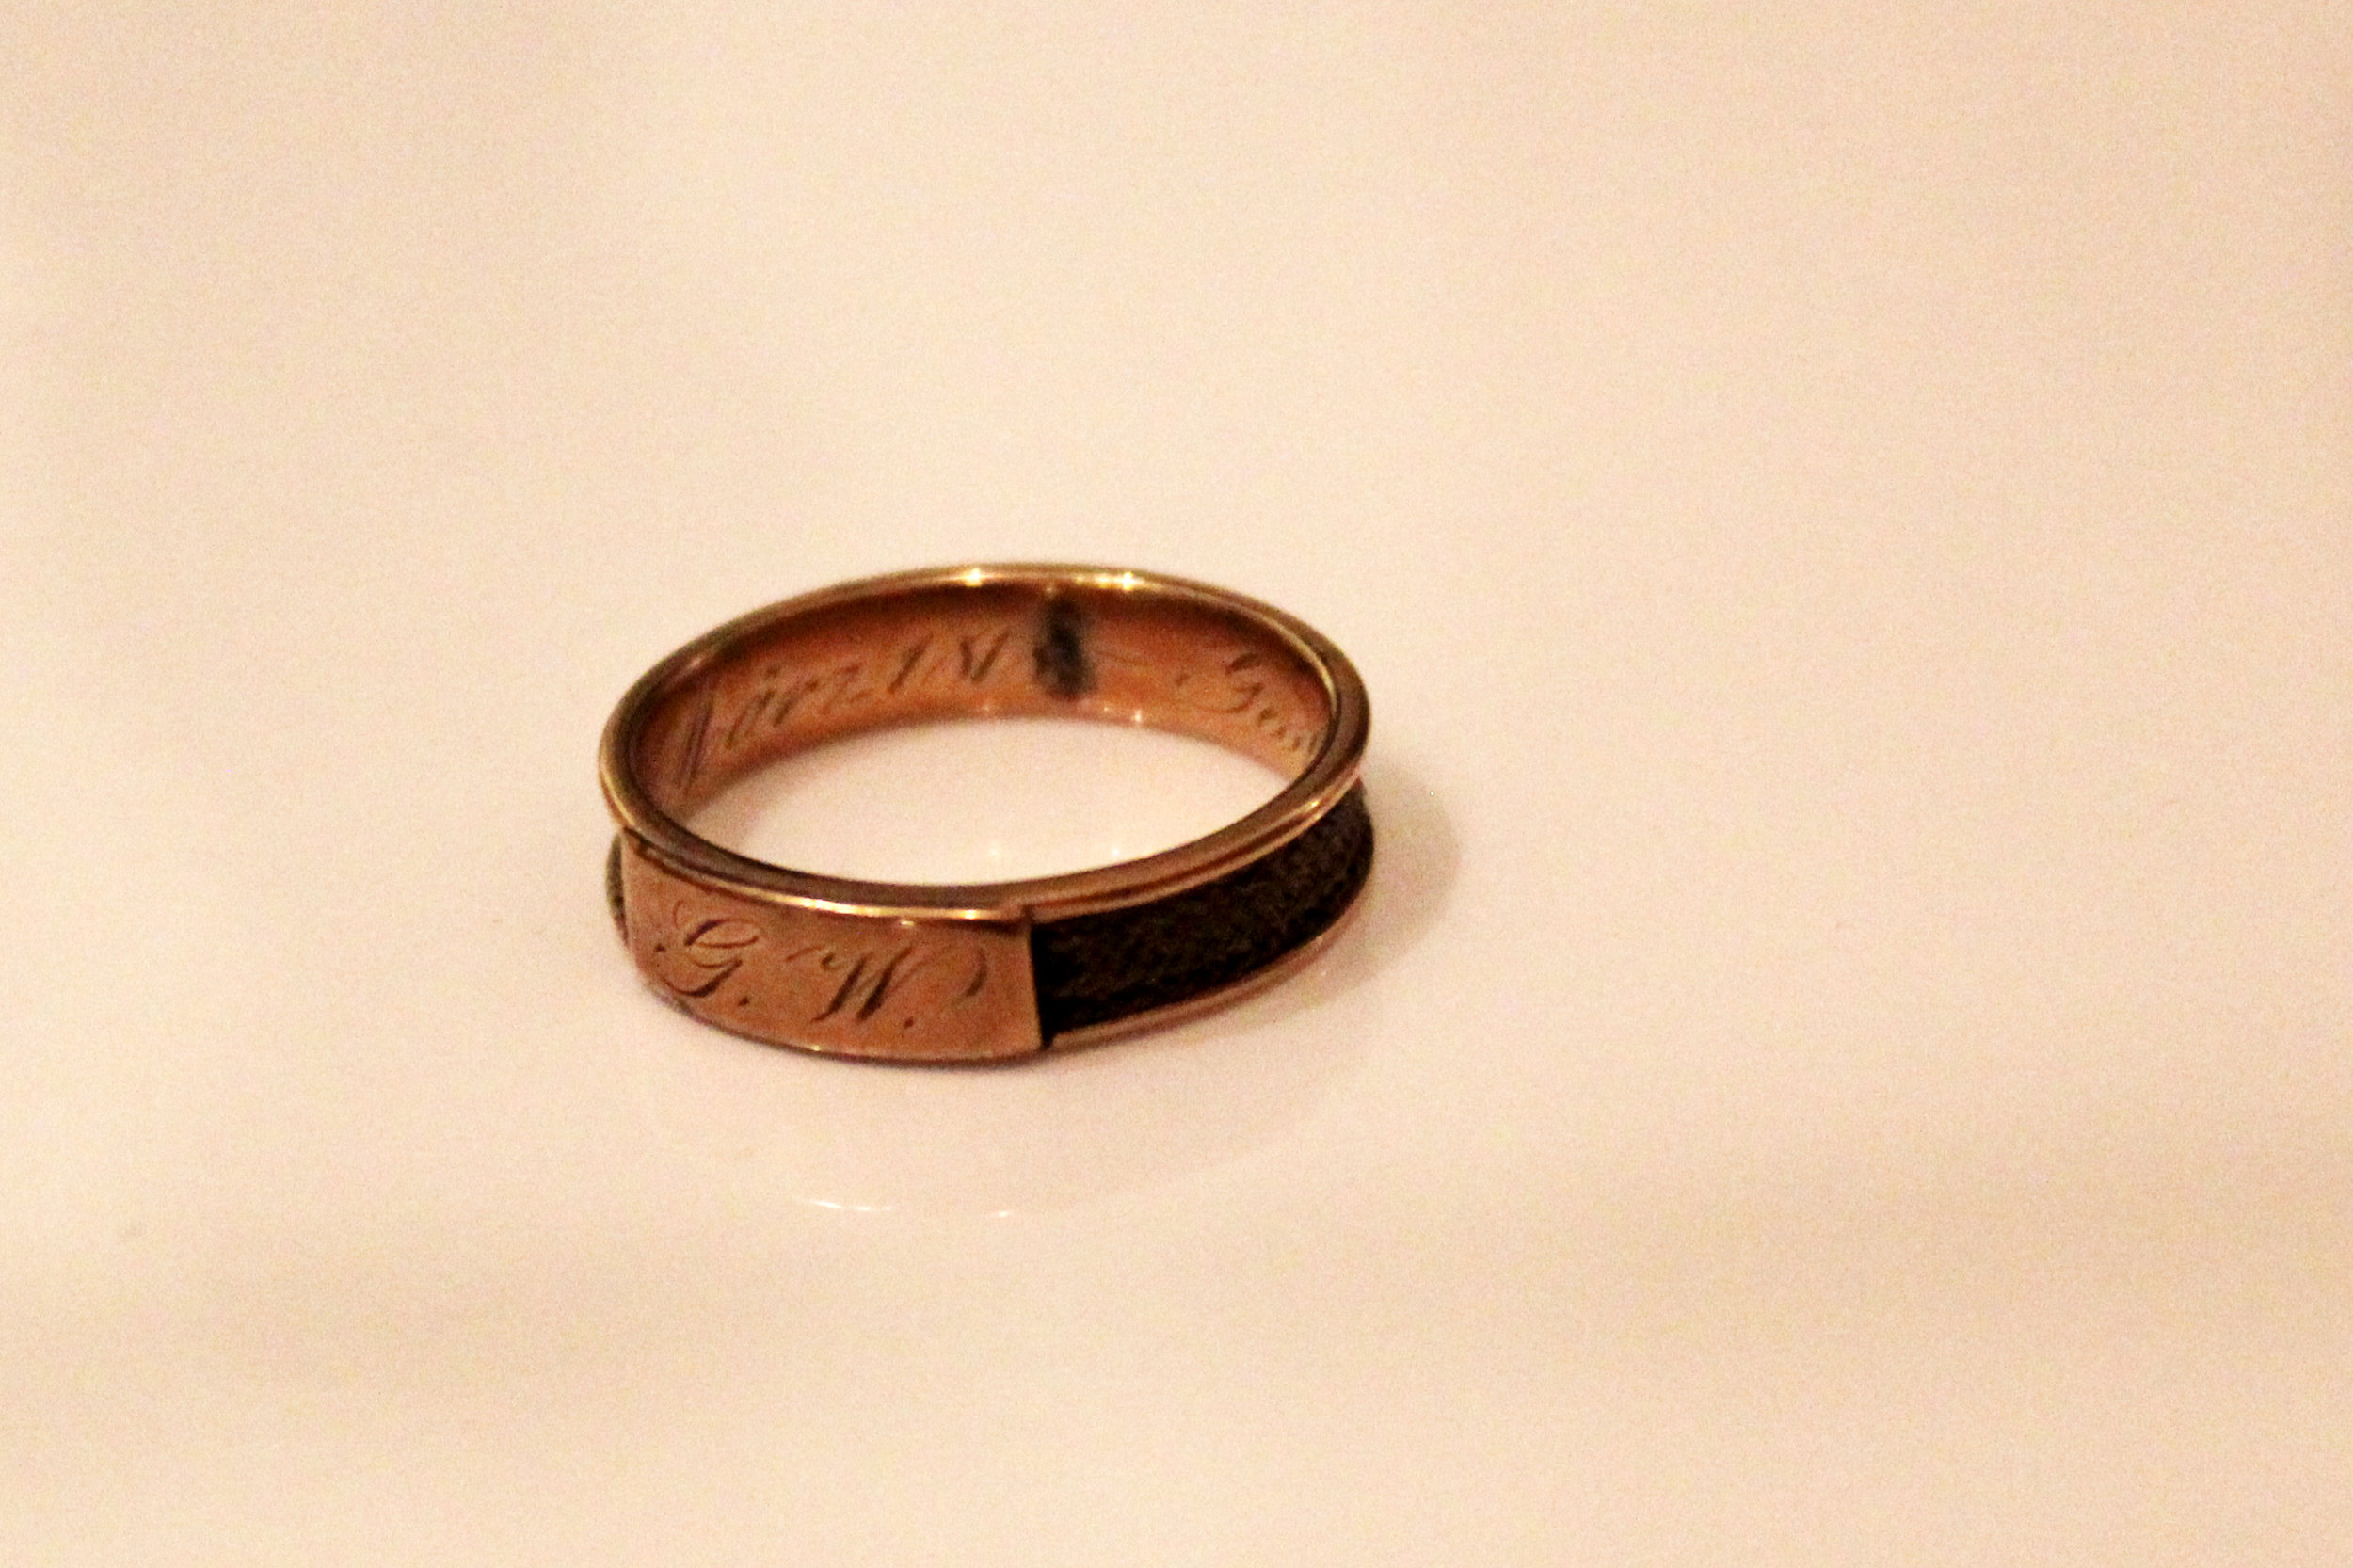 The ring that started it all...